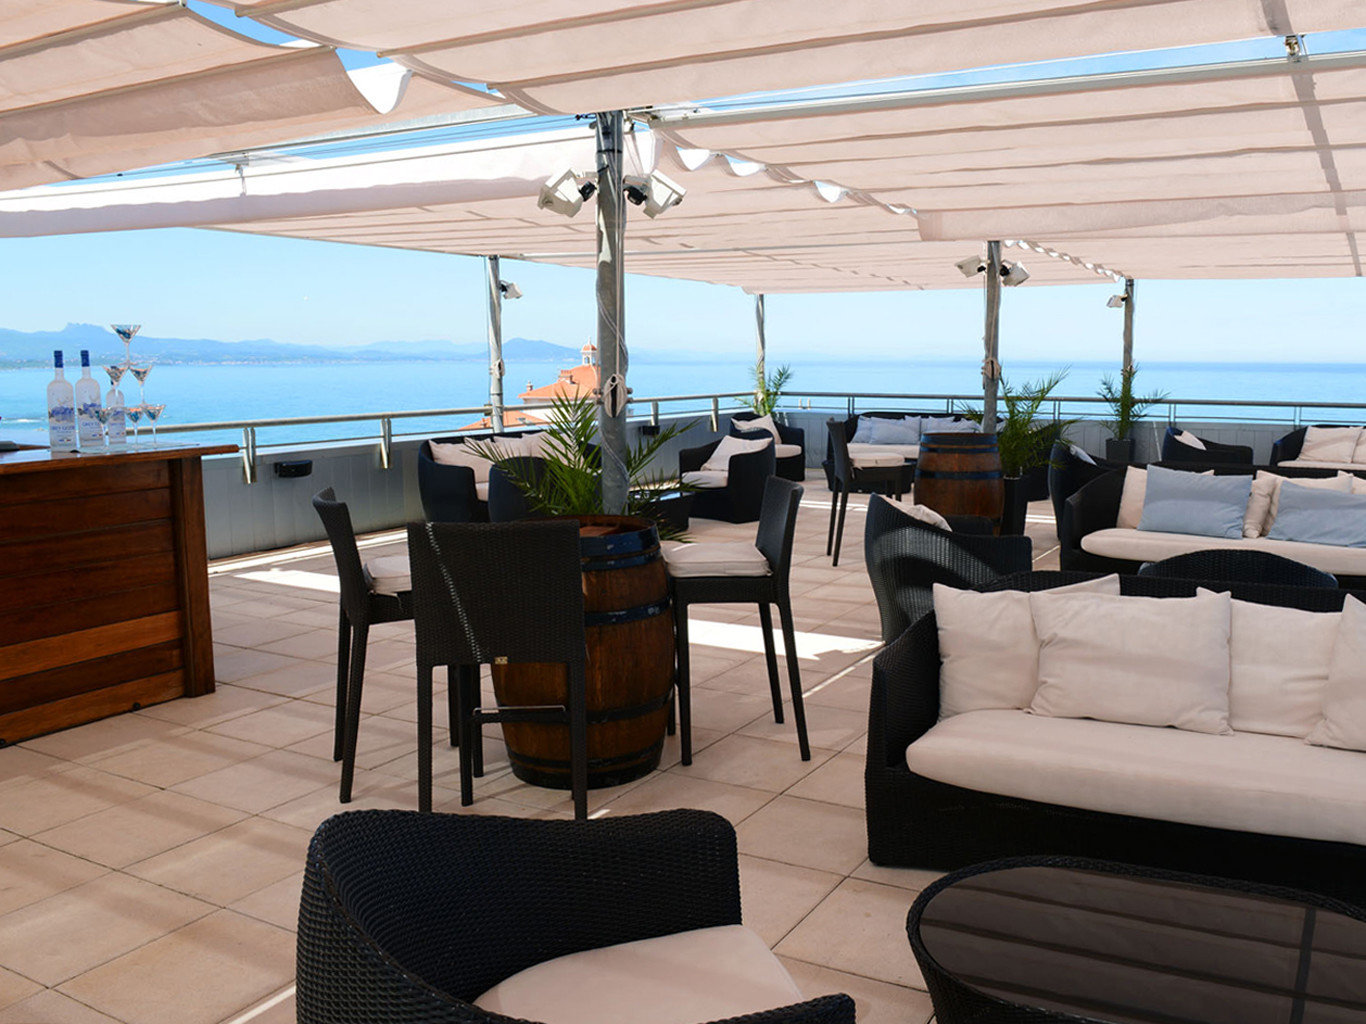 chair property passenger ship Boat yacht vehicle ship home living room watercraft restaurant Deck